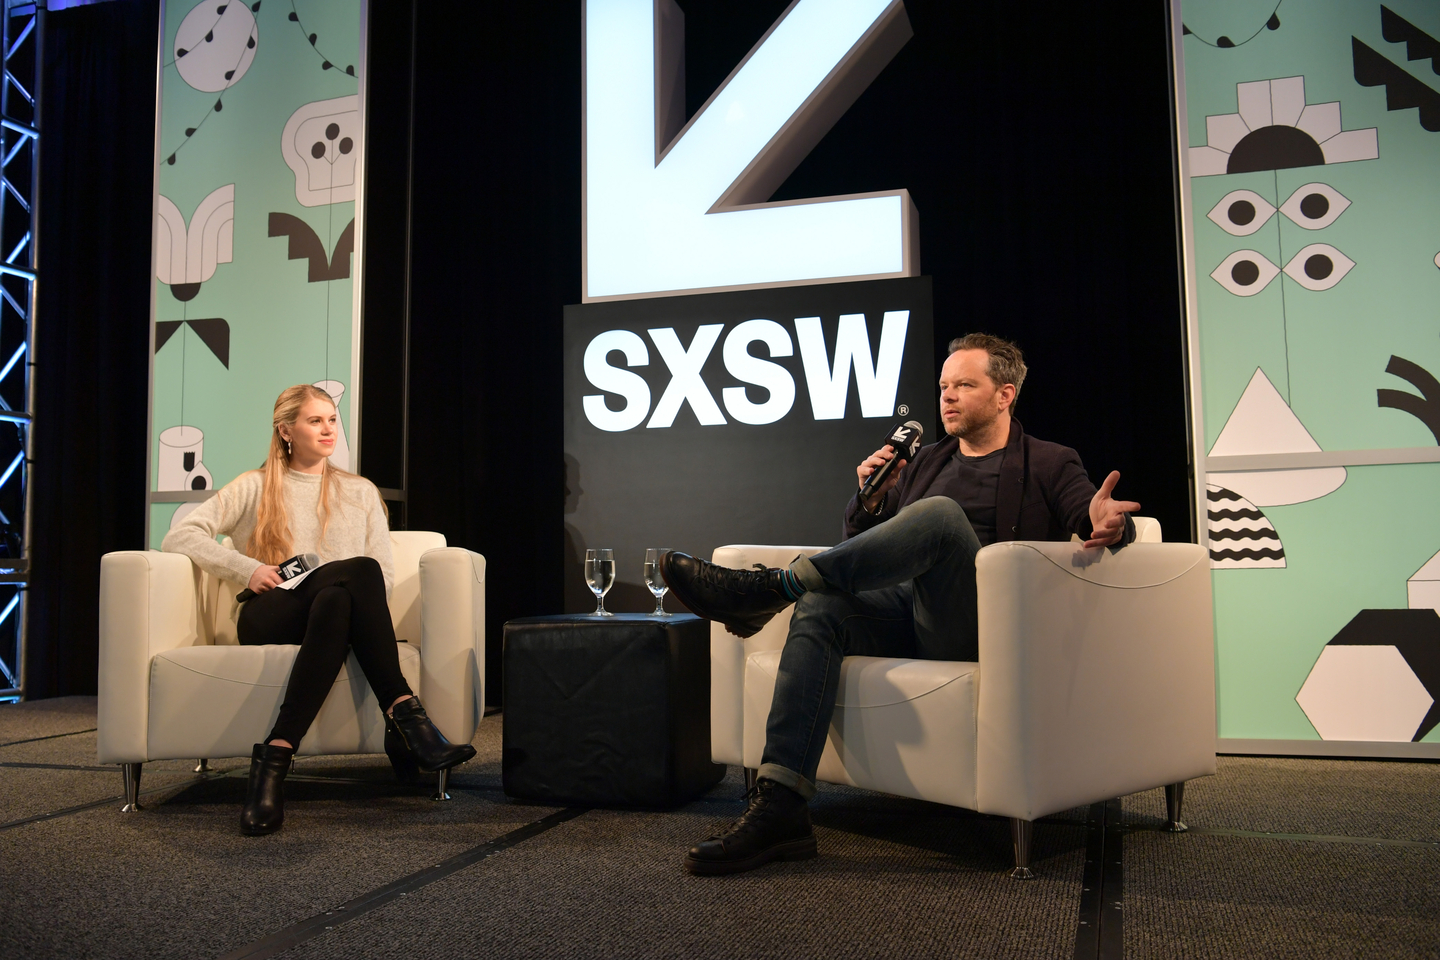 Bryn Sandberg and Noah Hawley speak onstage at his Featured Session.